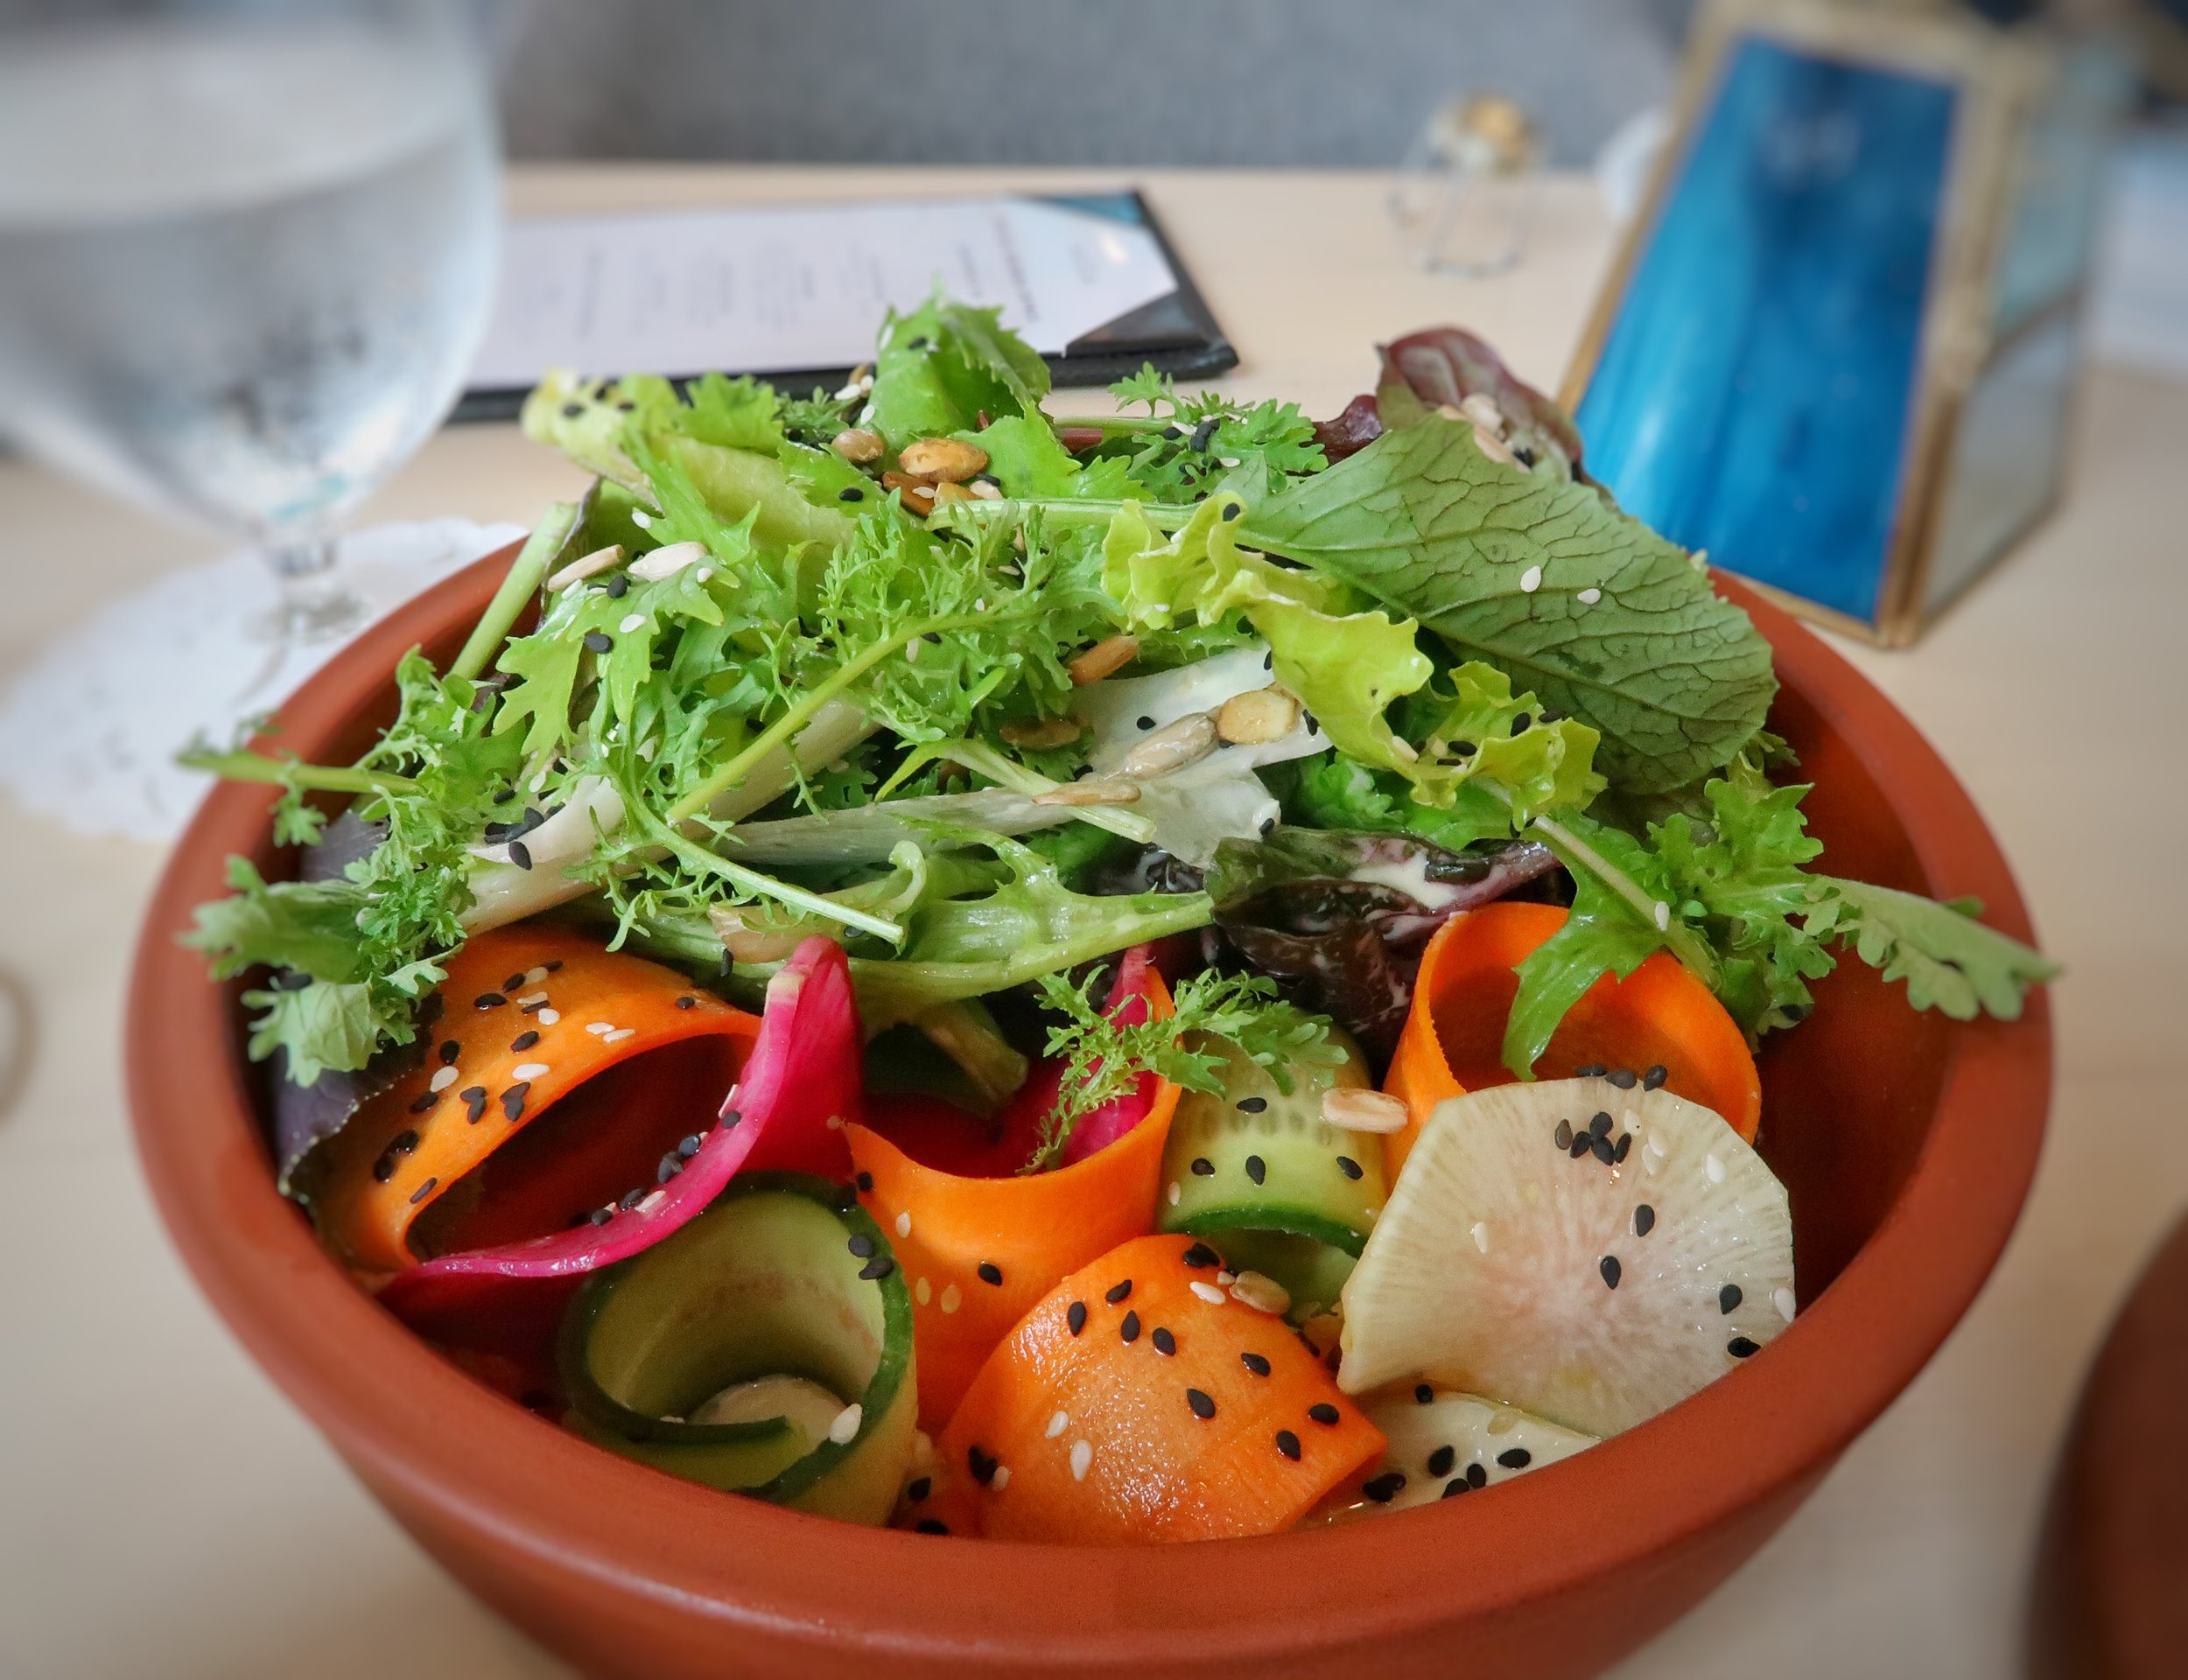 The Misticanza Salad with local crisp greens, crunchy vegetables, seeds, sesame and a delicious cucumber tahini dressing.